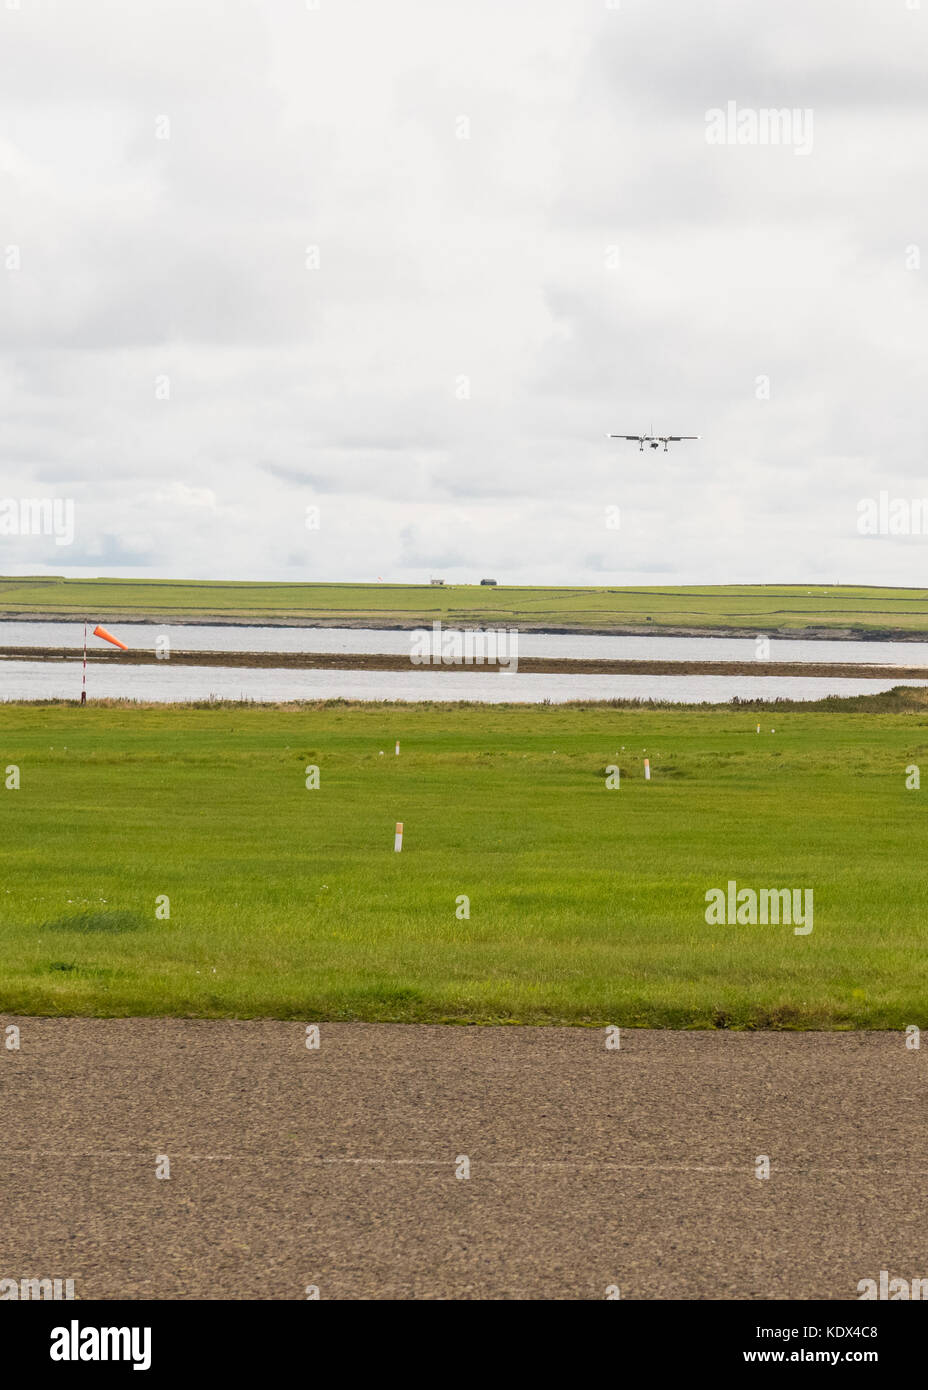 Plan loganair vol vers l'aéroport de Westray de papa à l'horizon de l'aéroport de Westray, Photo Stock